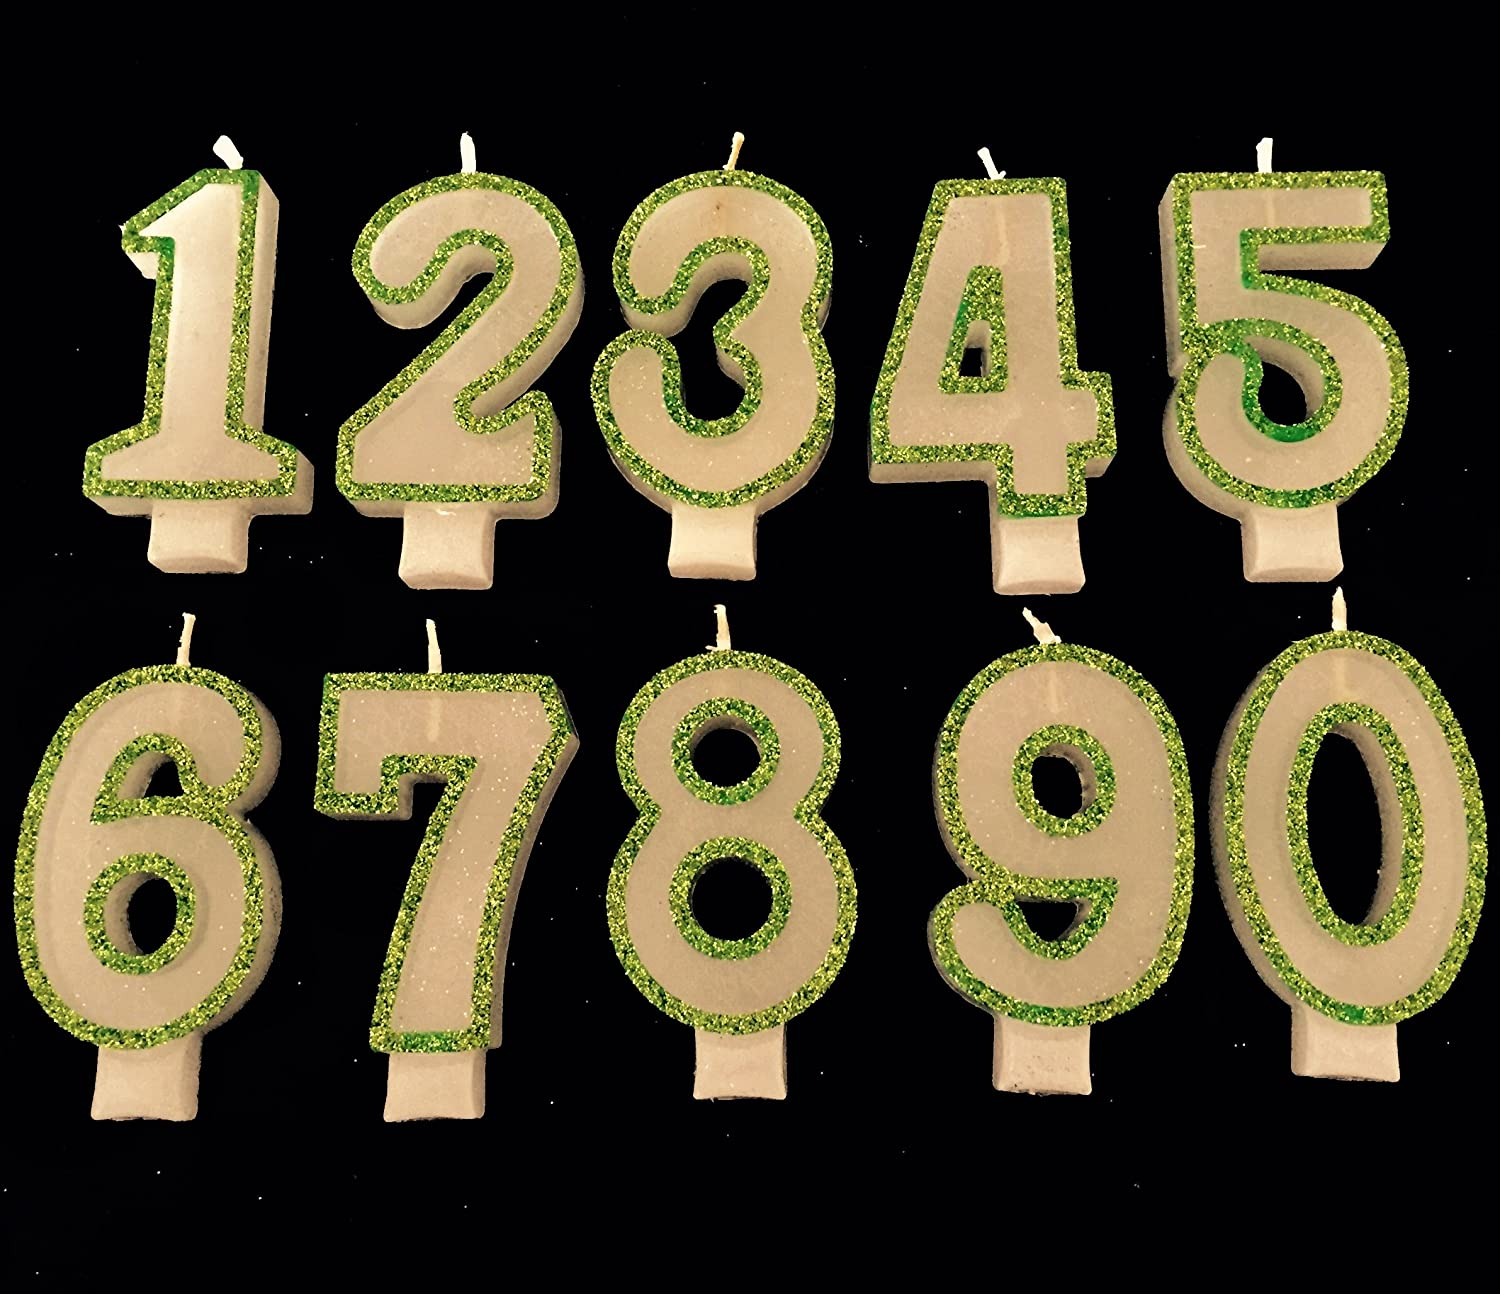 9 Wasiwax No Birthday Candle GREEN GLITTER Jesmon Trading Limited